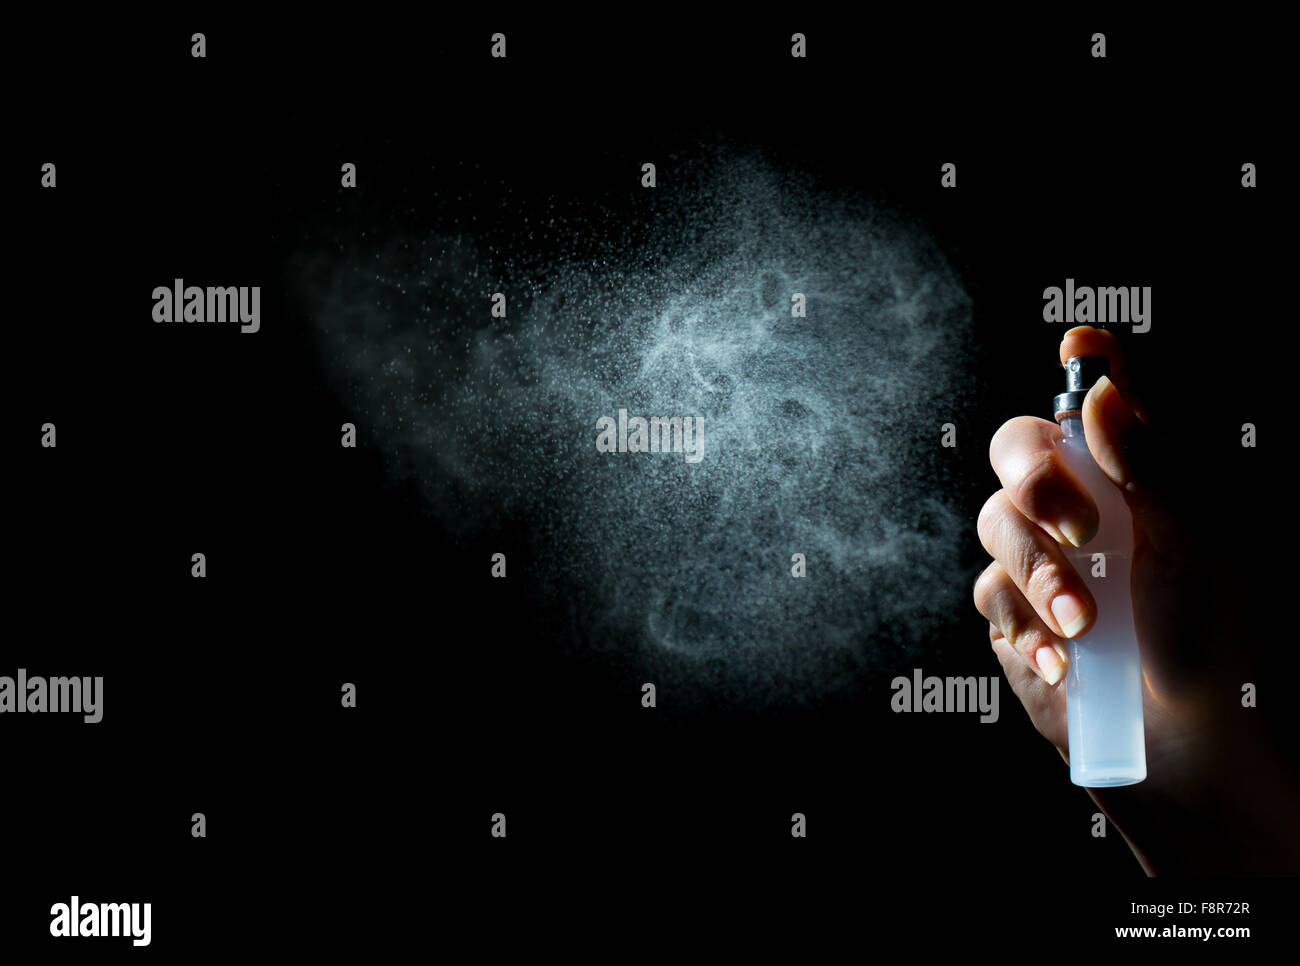 Blowing perfume in the form of small cloud particles - Stock Image